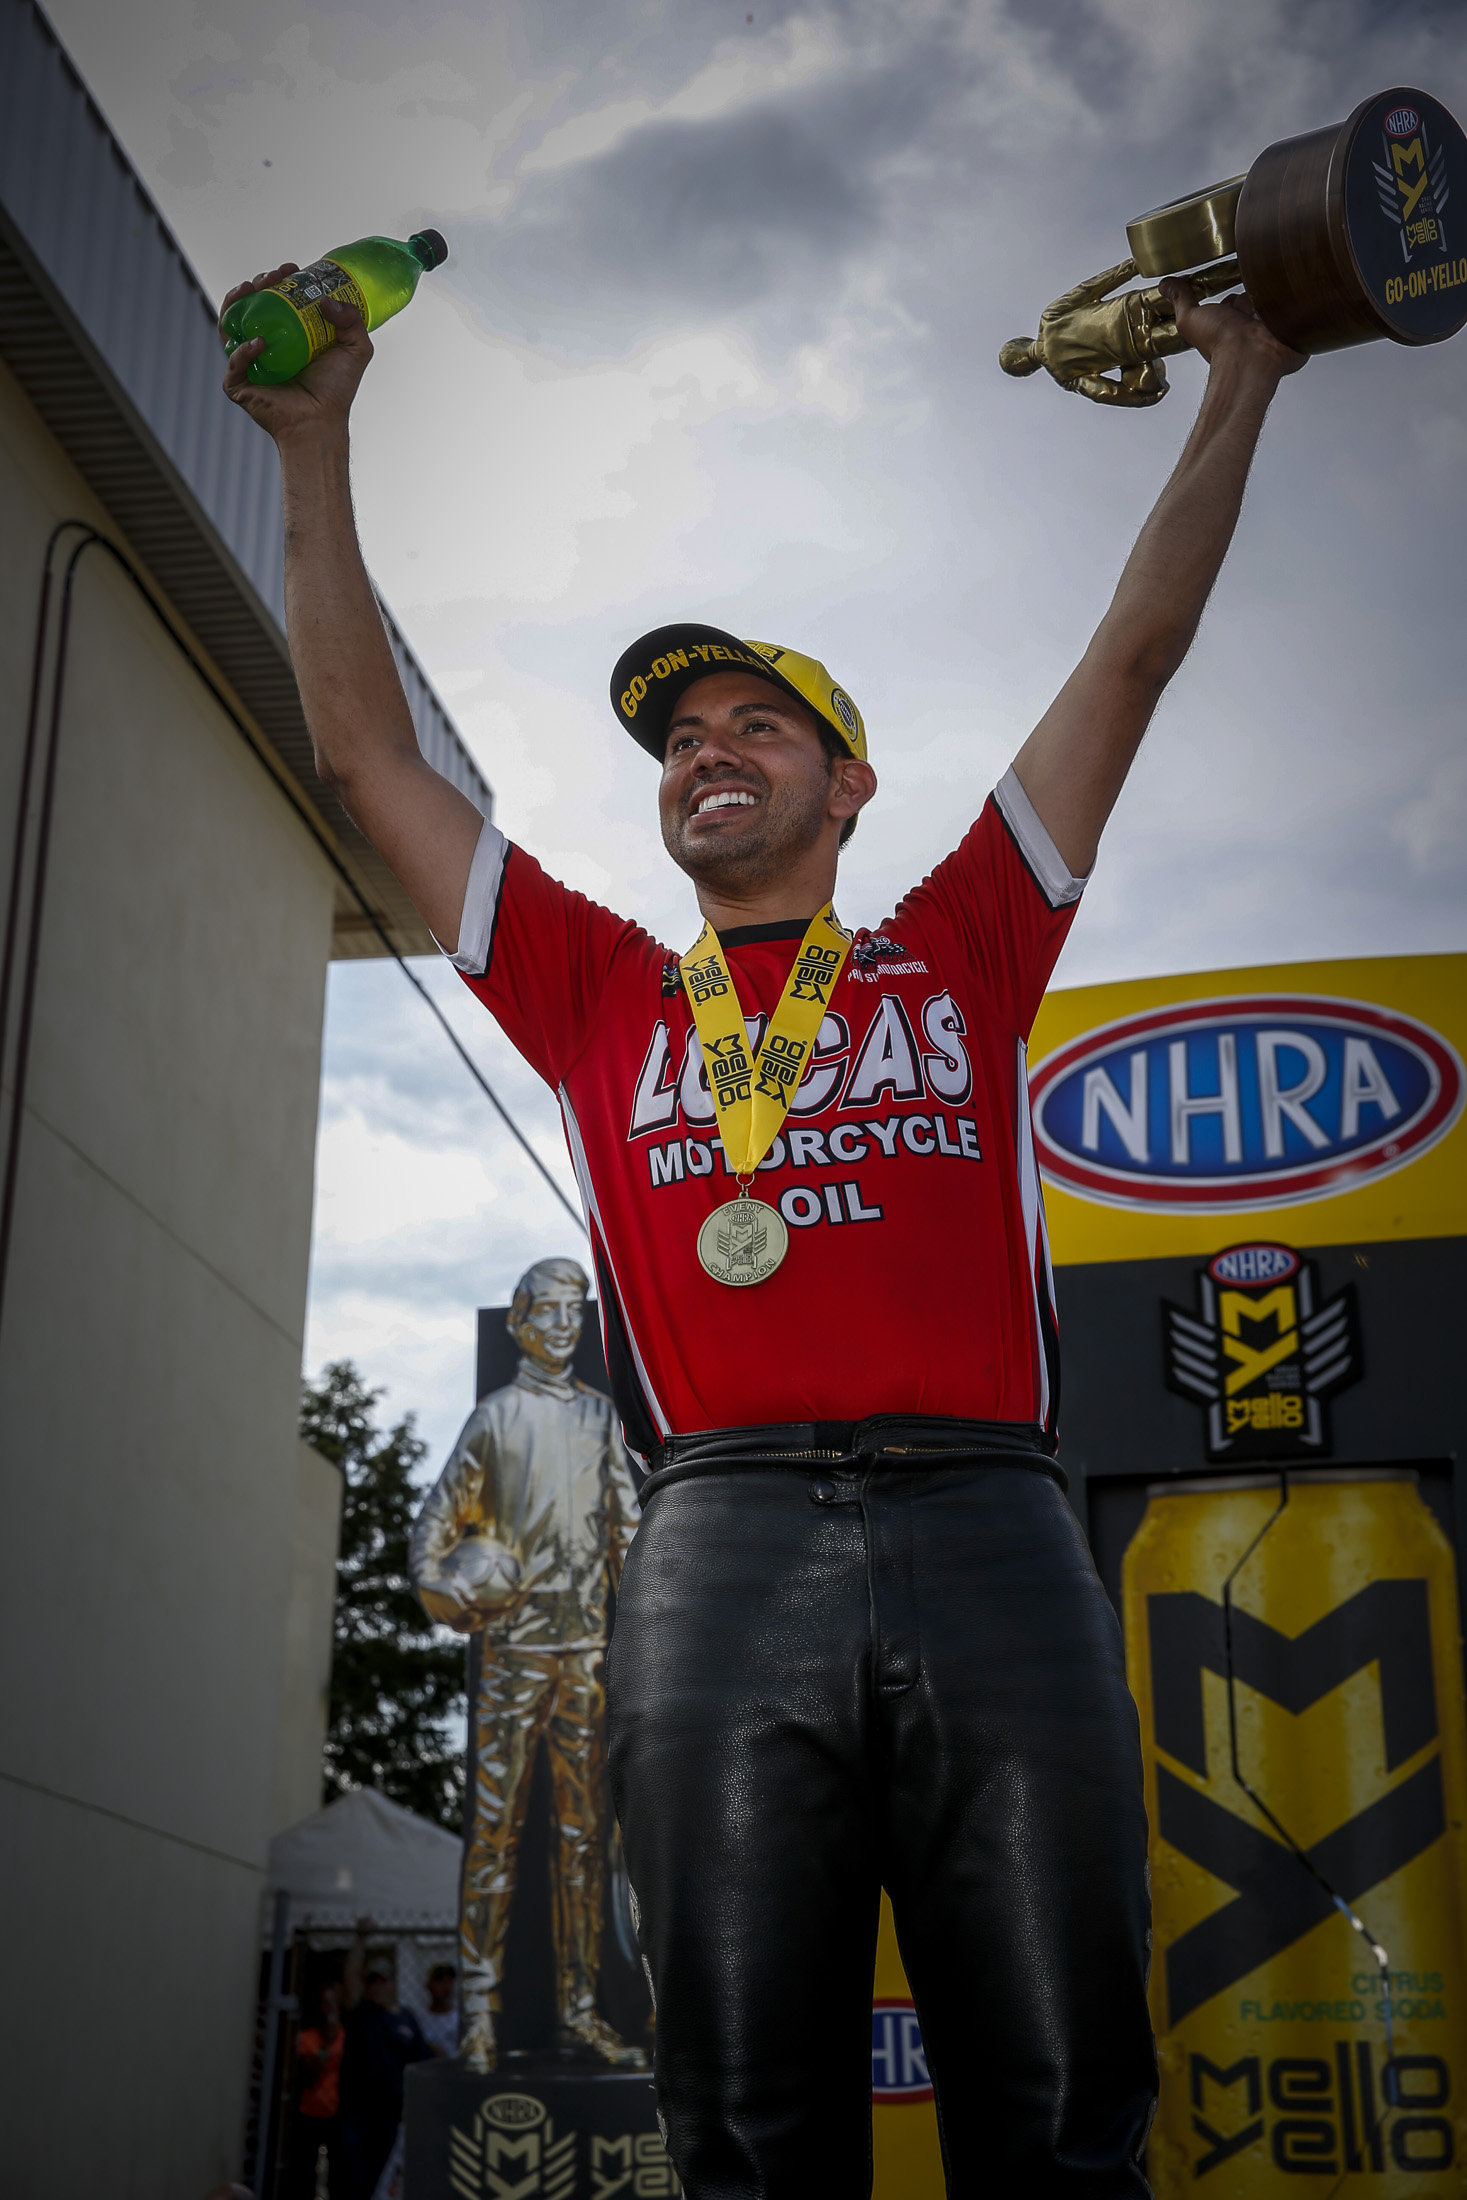 Lucas Oil Pro Stock Motorcycle rider Hector Arana Jr. with the Wally after winning the Dodge NHRA Nationals